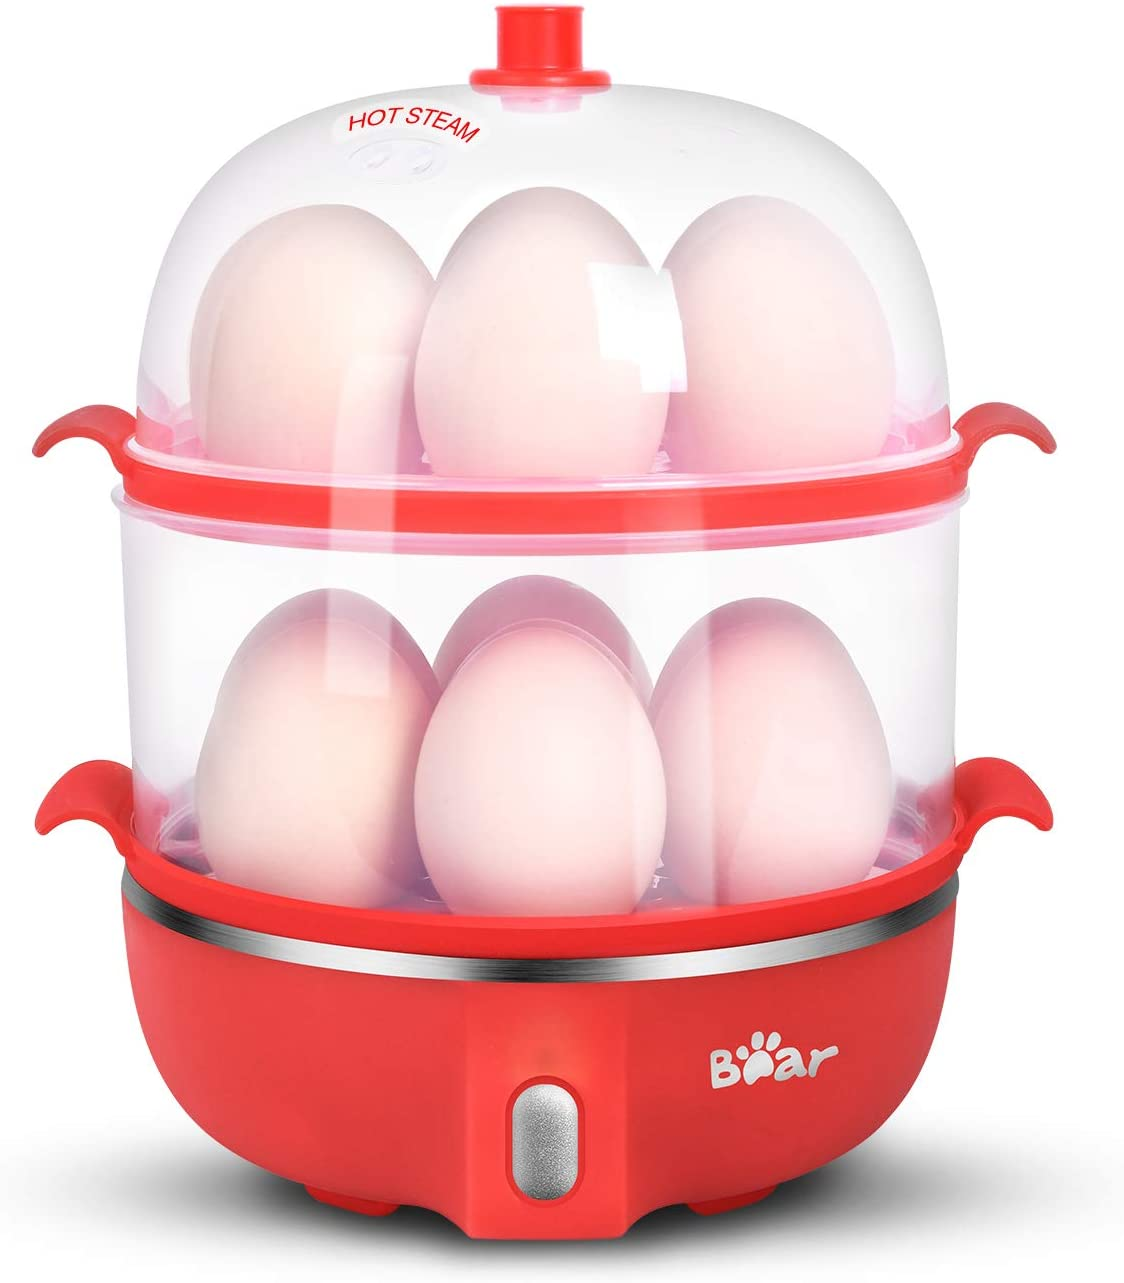 Rapid Electric Egg Cooker Poacher Bear, 14 Capacity Egg Boiler for Poached Scrambled Omelets Steamed Vegetables Dumplings, Hard Boiled Egg Cooker Maker with Auto Shut-Off, Red